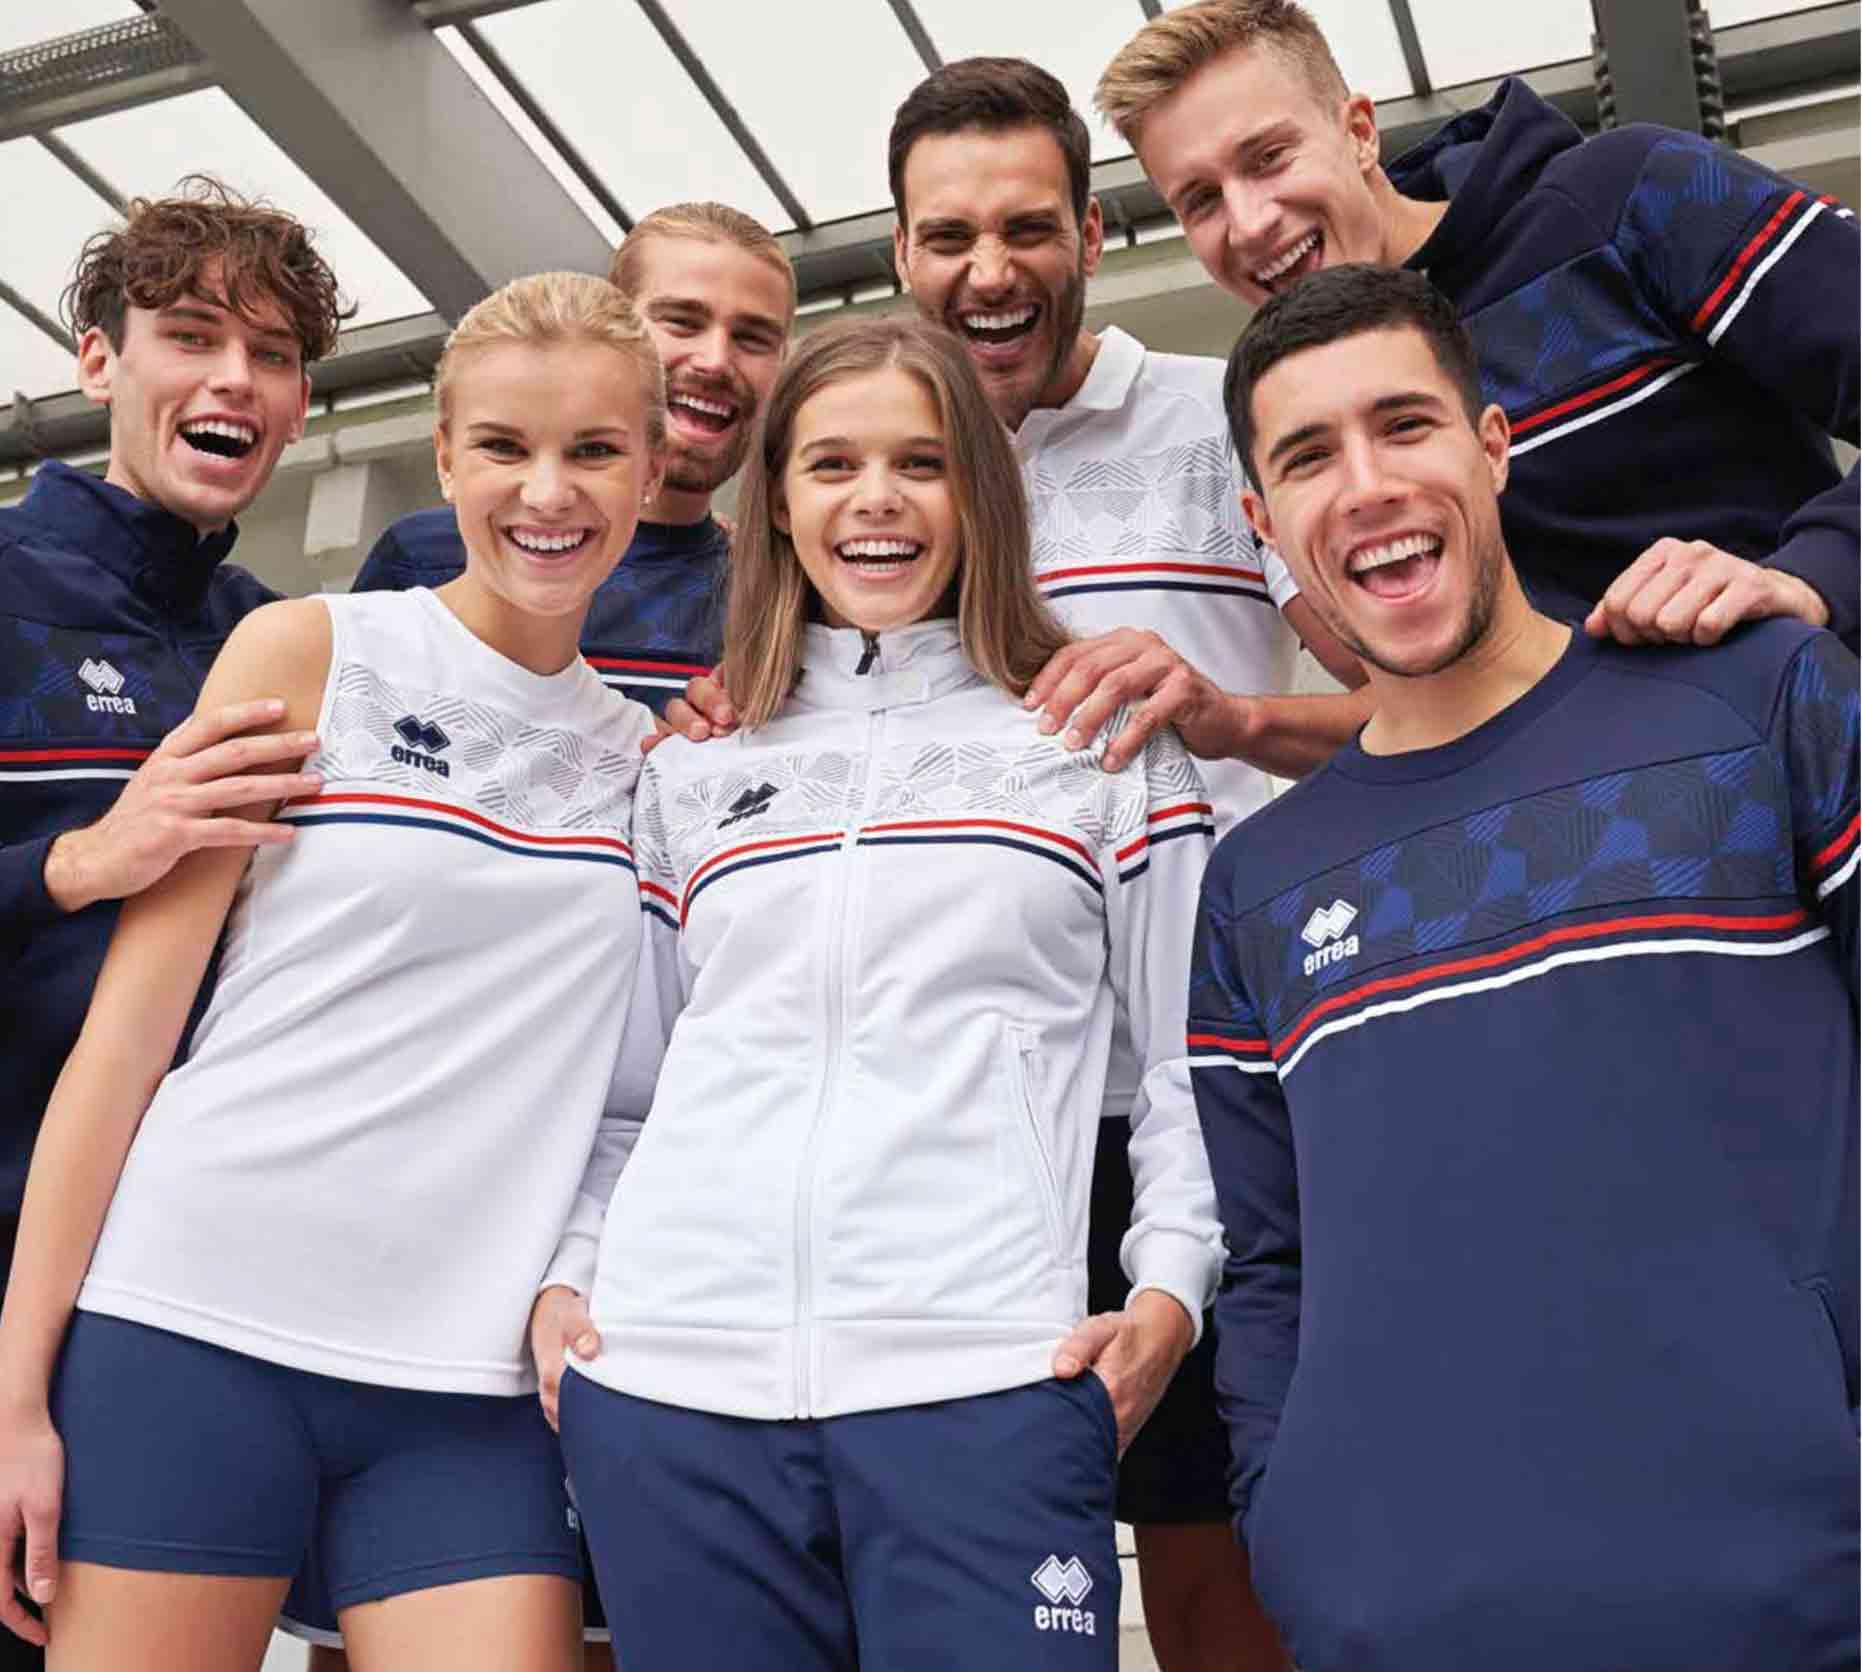 Startner teams up with Erreà tracksuits for gymnastics clubs